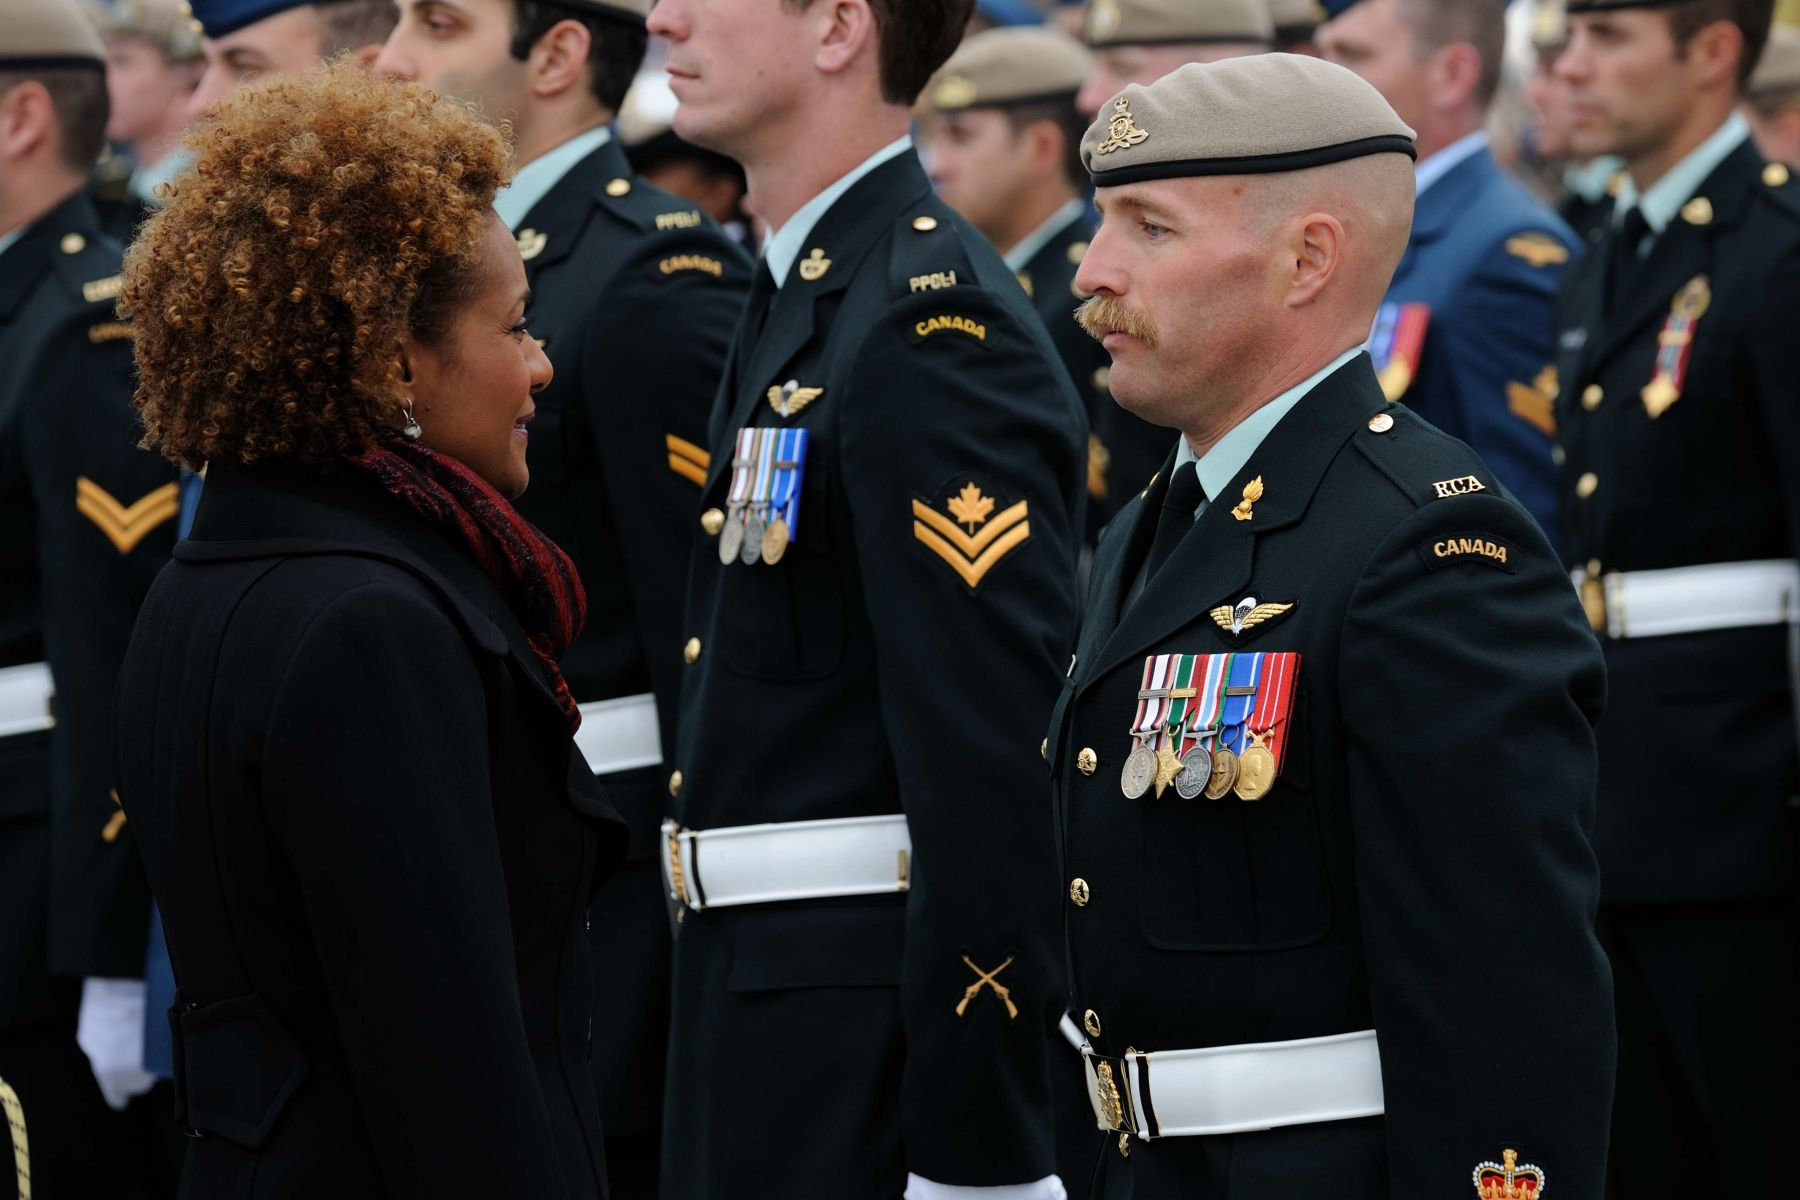 A military parade composed of 250 Canadian Forces members were on hand to bid farewell to their Commander-in-Chief. Her Excellency spoke with Warrent Officer Allen.